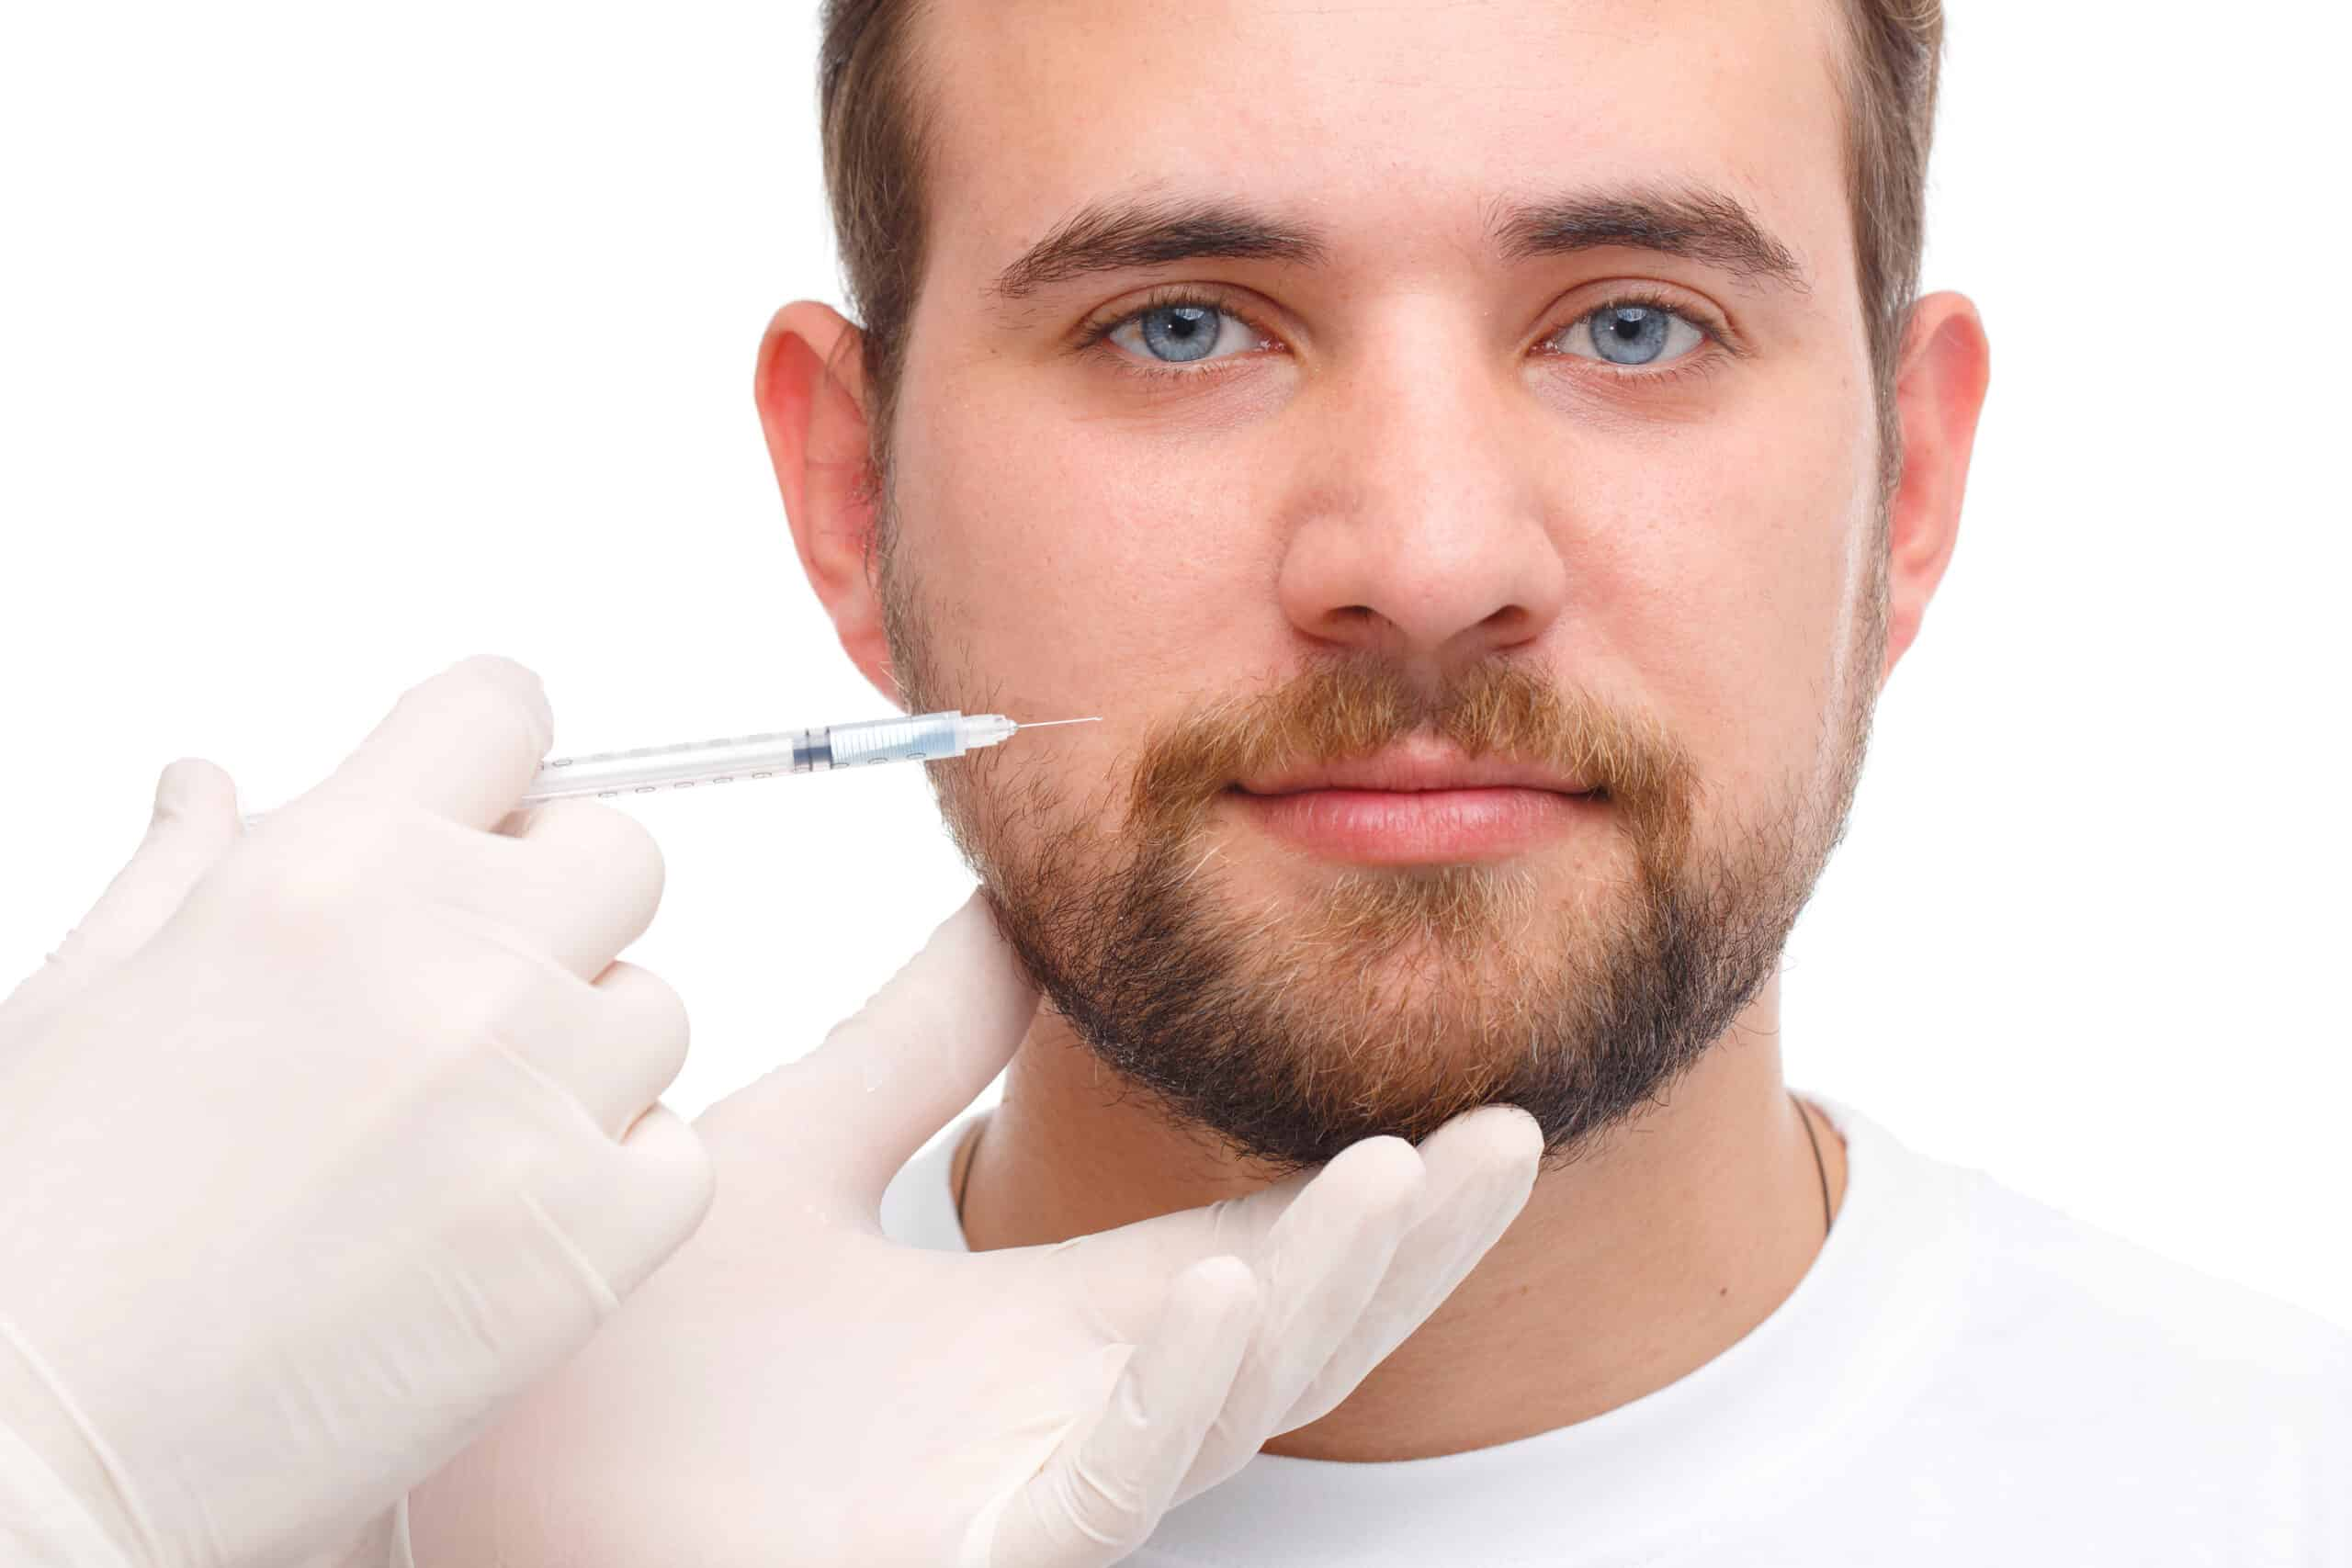 Everything you need to know about Medical (Botox Included) Tourisim in Riviera Maya